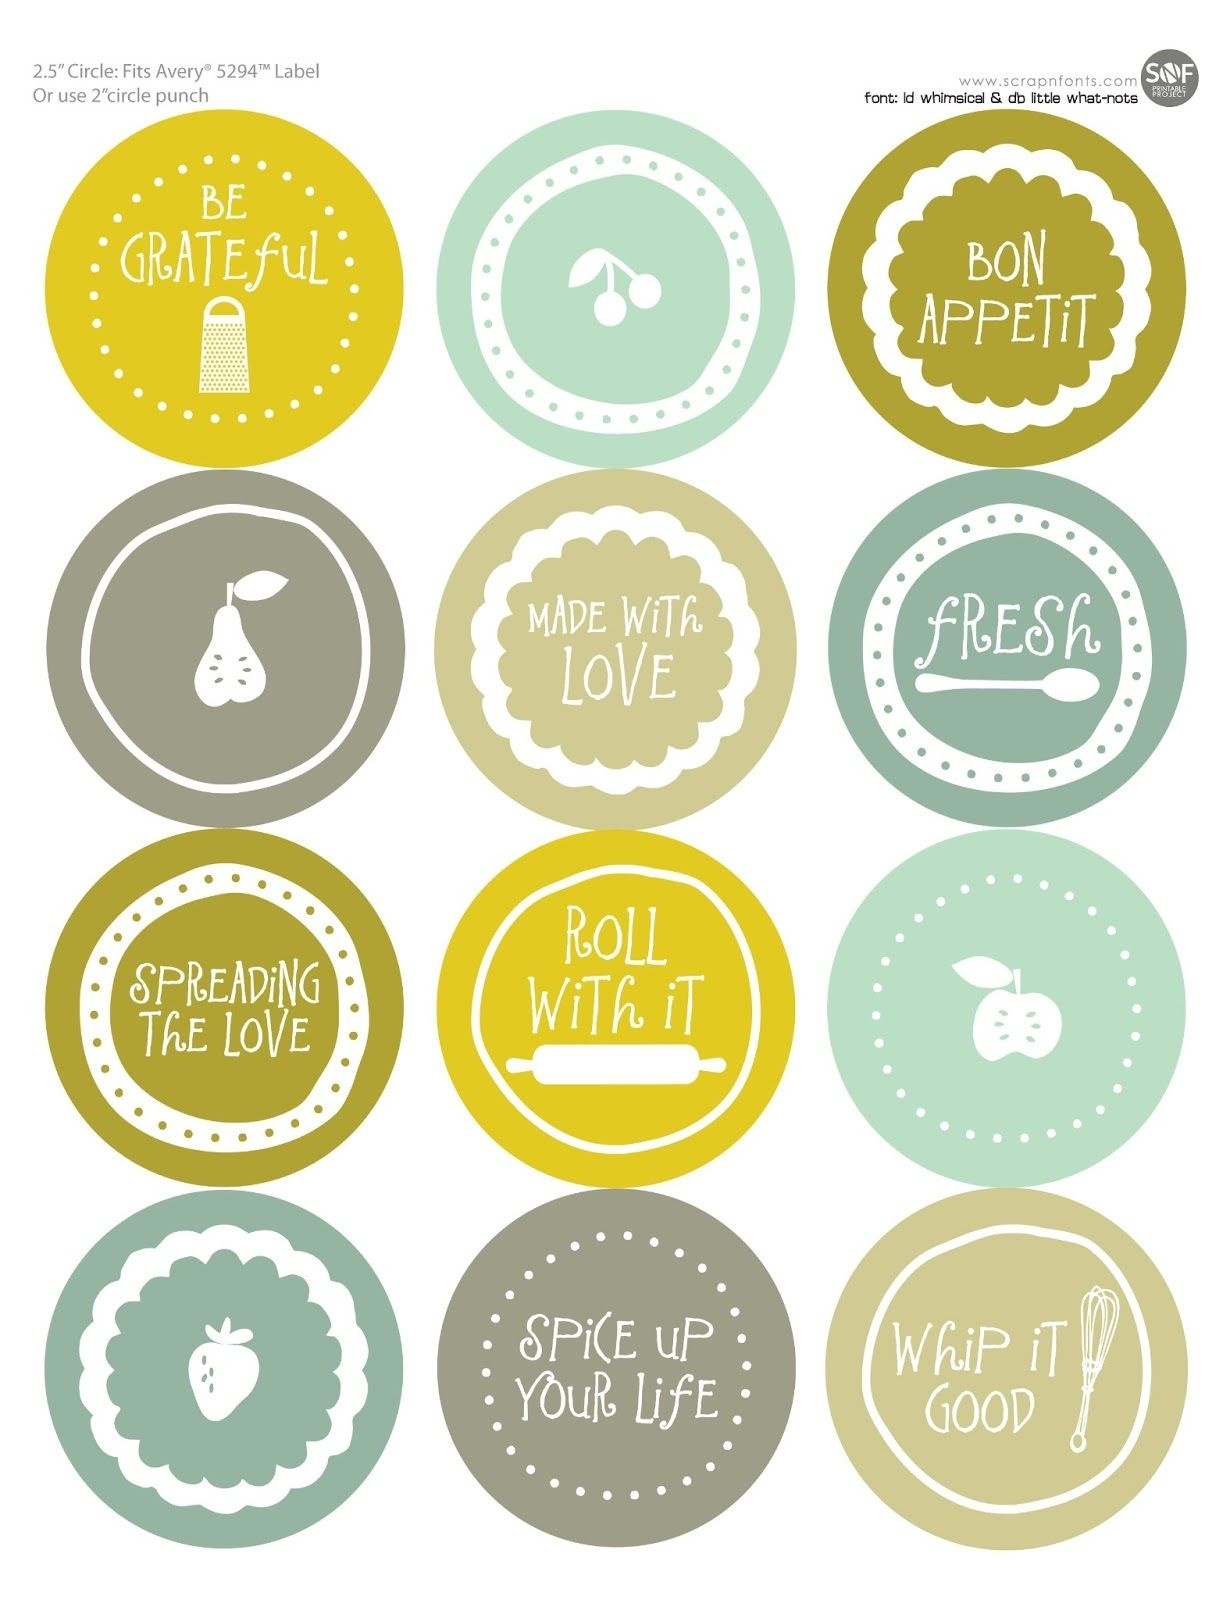 Free Mason Jar Labels To Print | All Wrapped Up | Jar Labels, Mason - Free Printable Mason Jar Labels Template